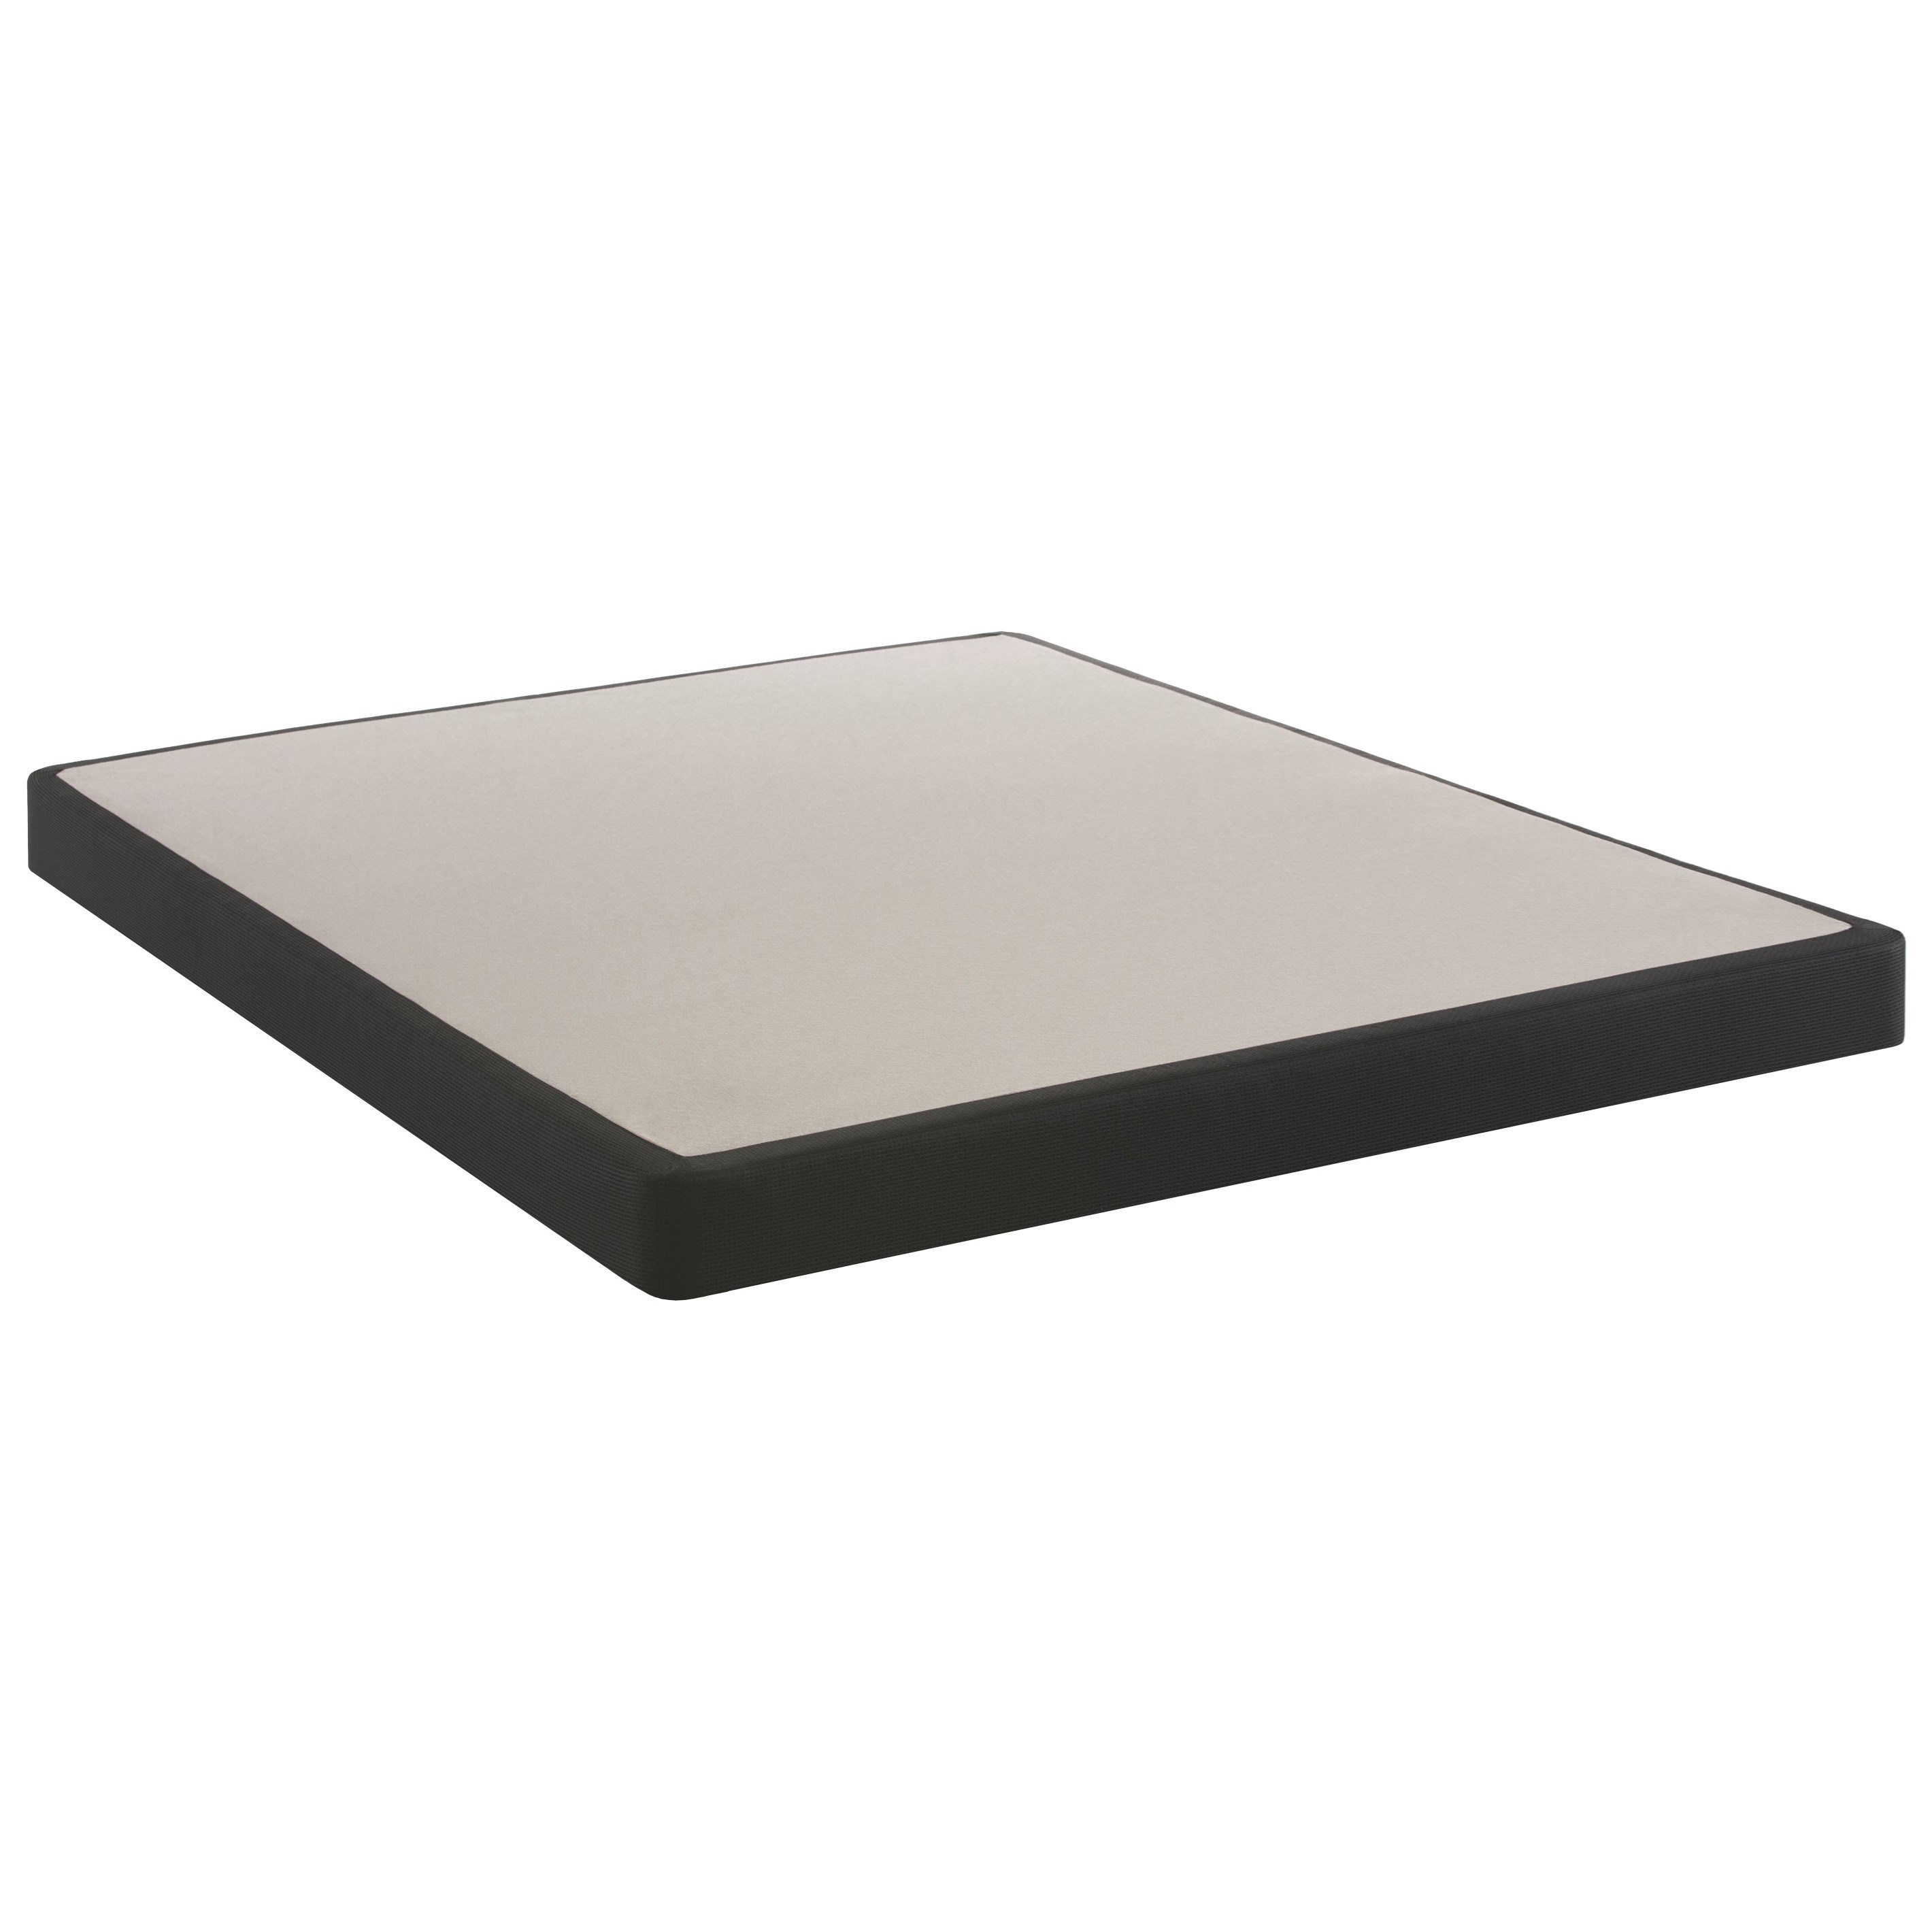 "2017 StableSupport Foundations Split Cal King Low Profile Base 5"" Height by Sealy at Gill Brothers Furniture"